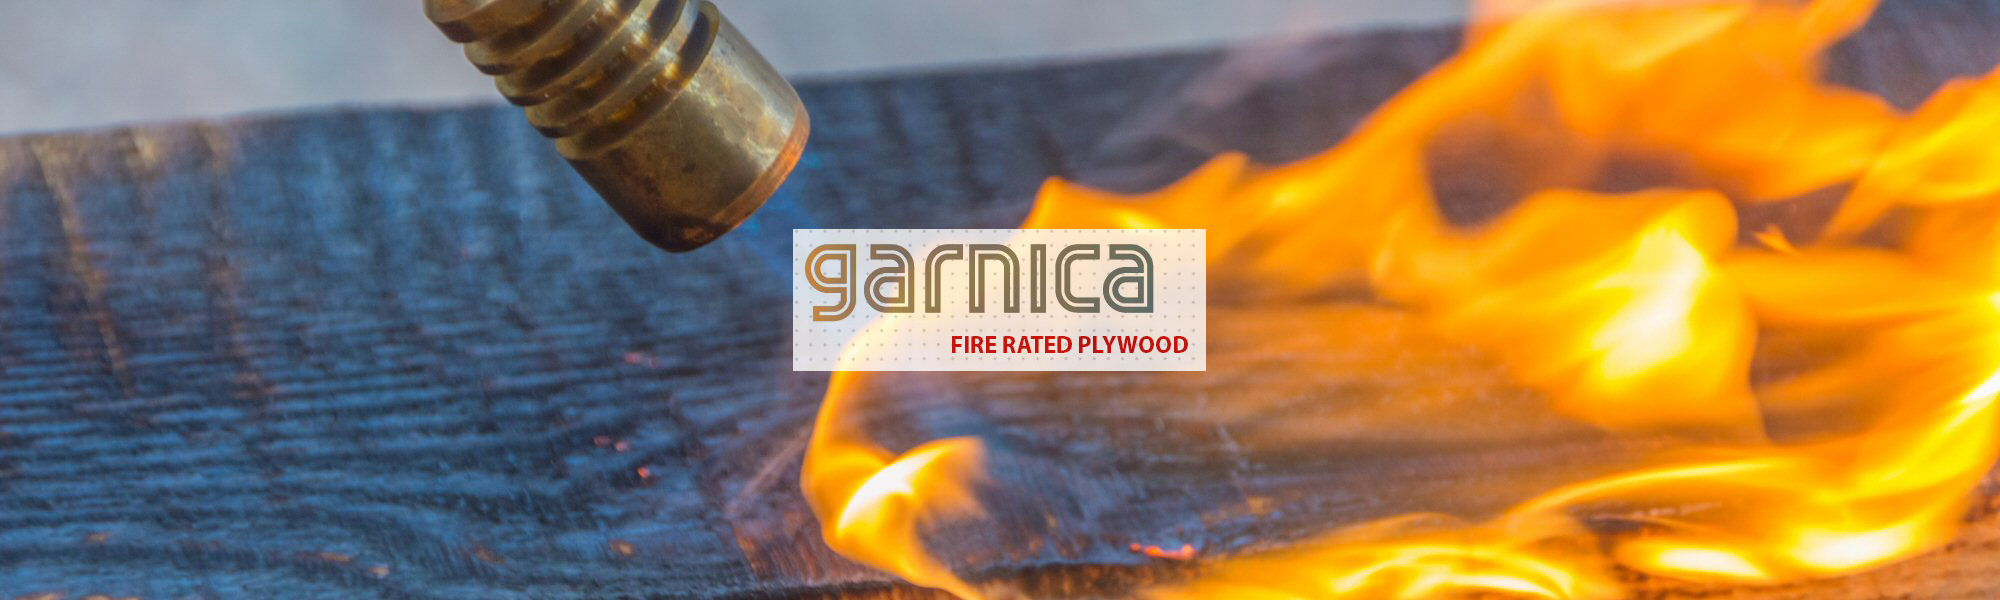 Garnica Fire Rated Plywood - Wholesale Plywood - Chesapeake Plywood Maryland